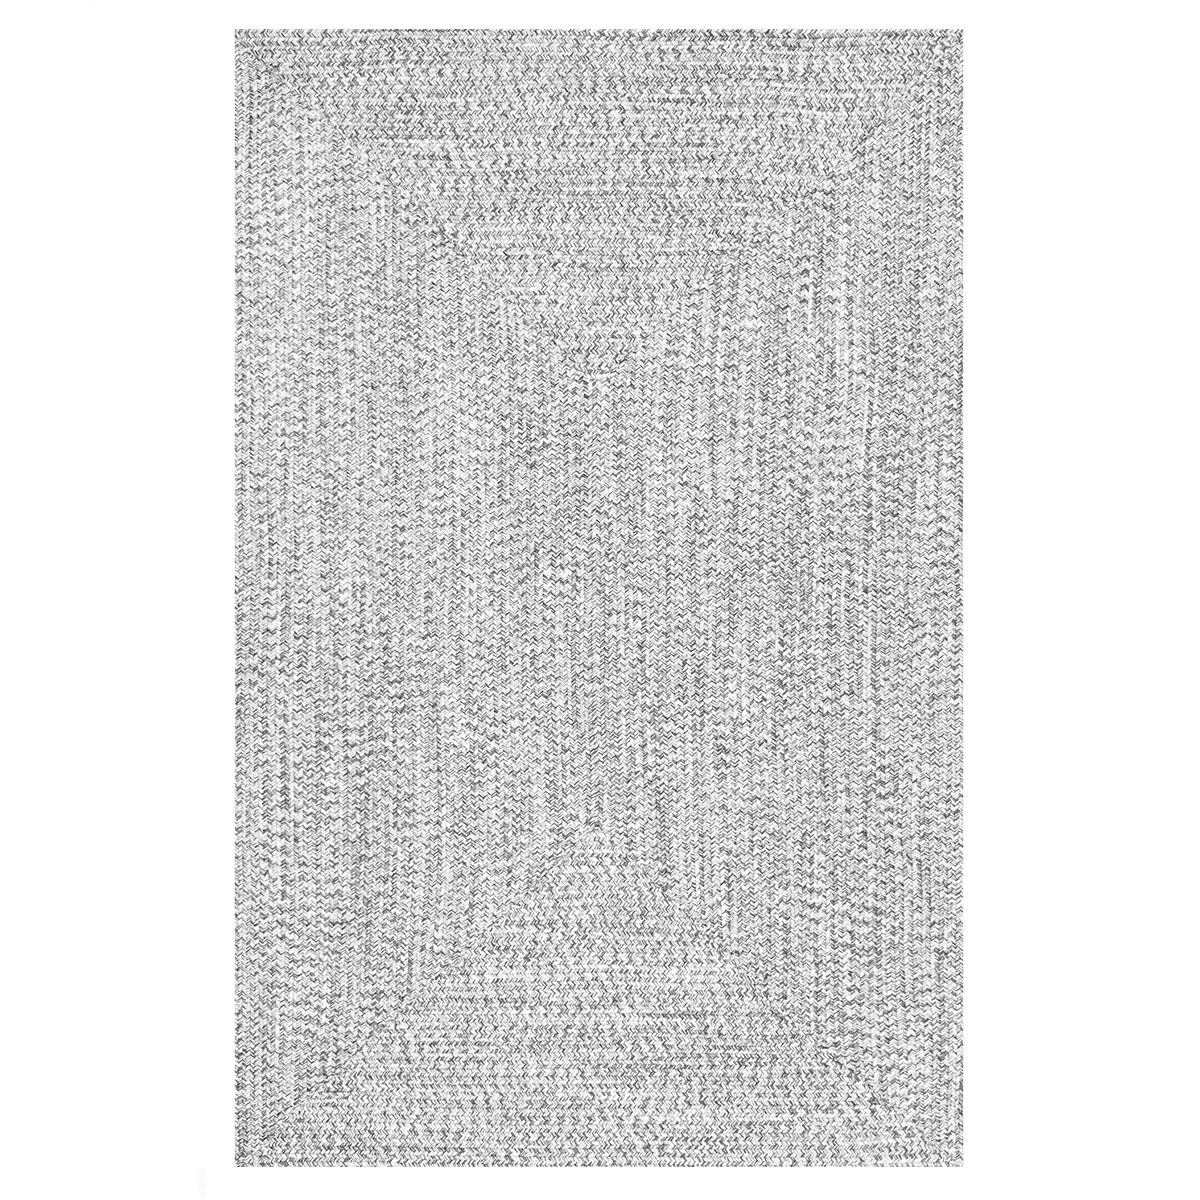 Neutral braided rug made with a braided contemporary design. photo